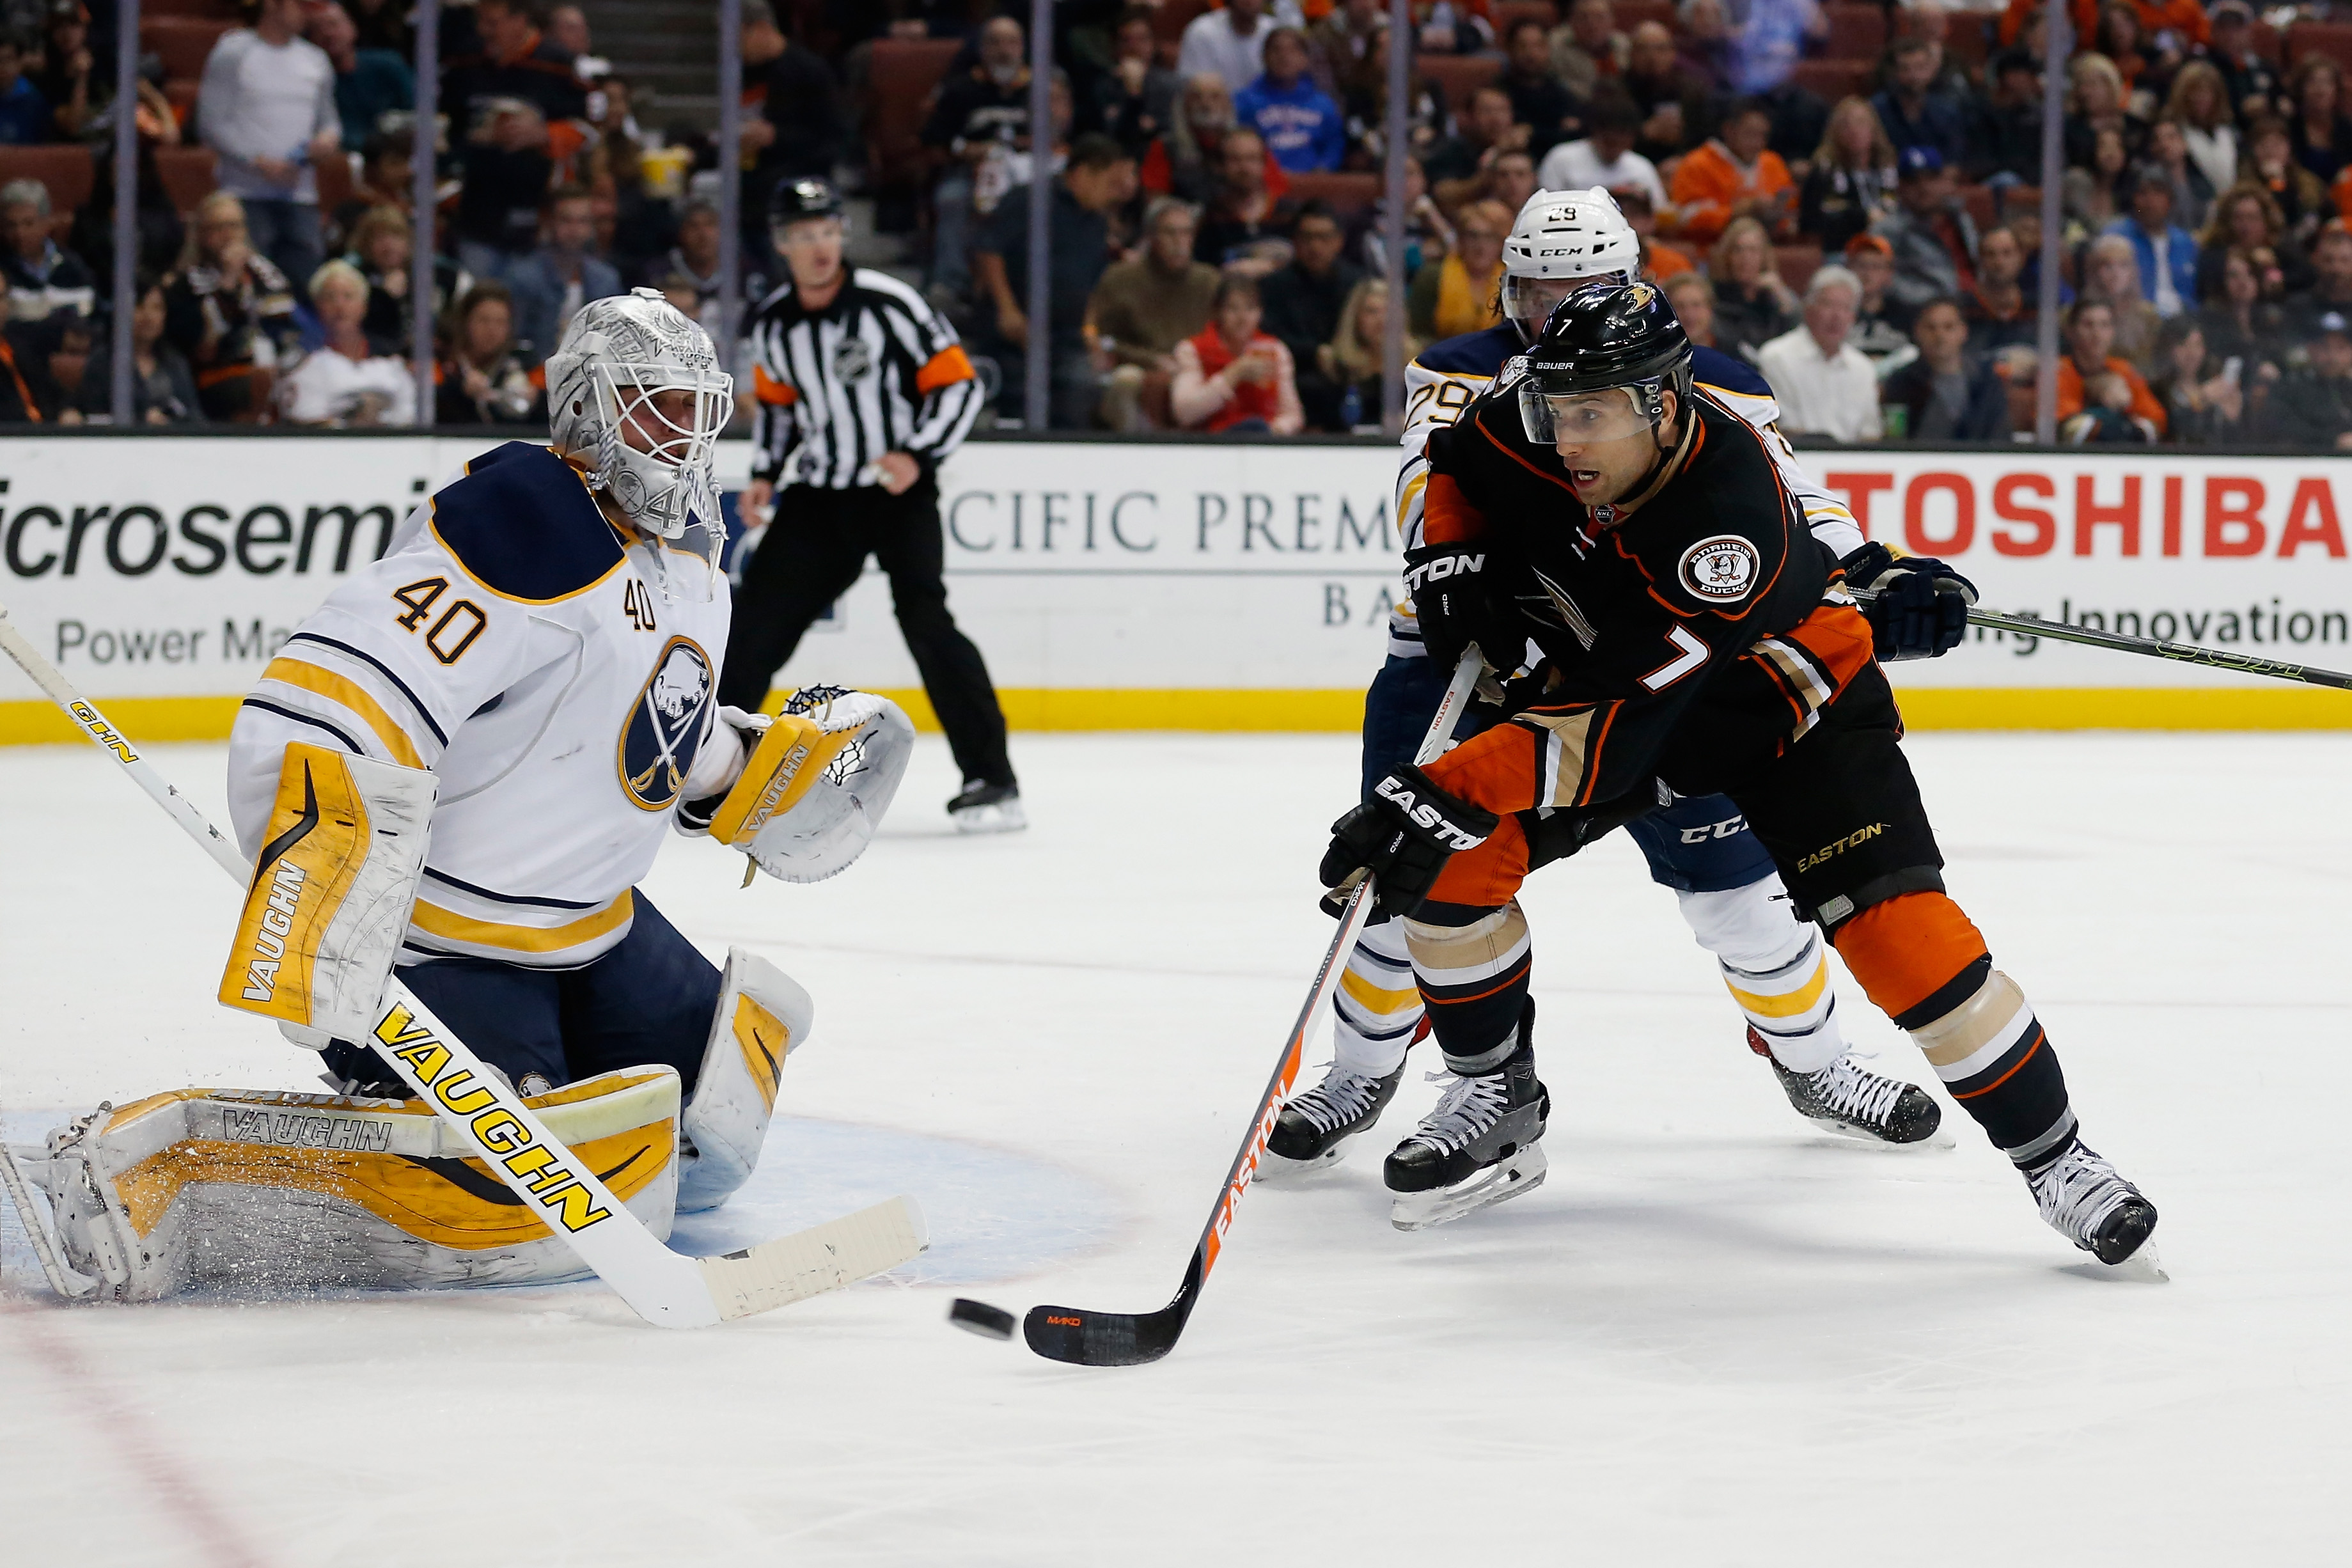 Andrew Cogliano of the Ducks is stopped by Sabres goaltender Robin Lehner (Getty Images).